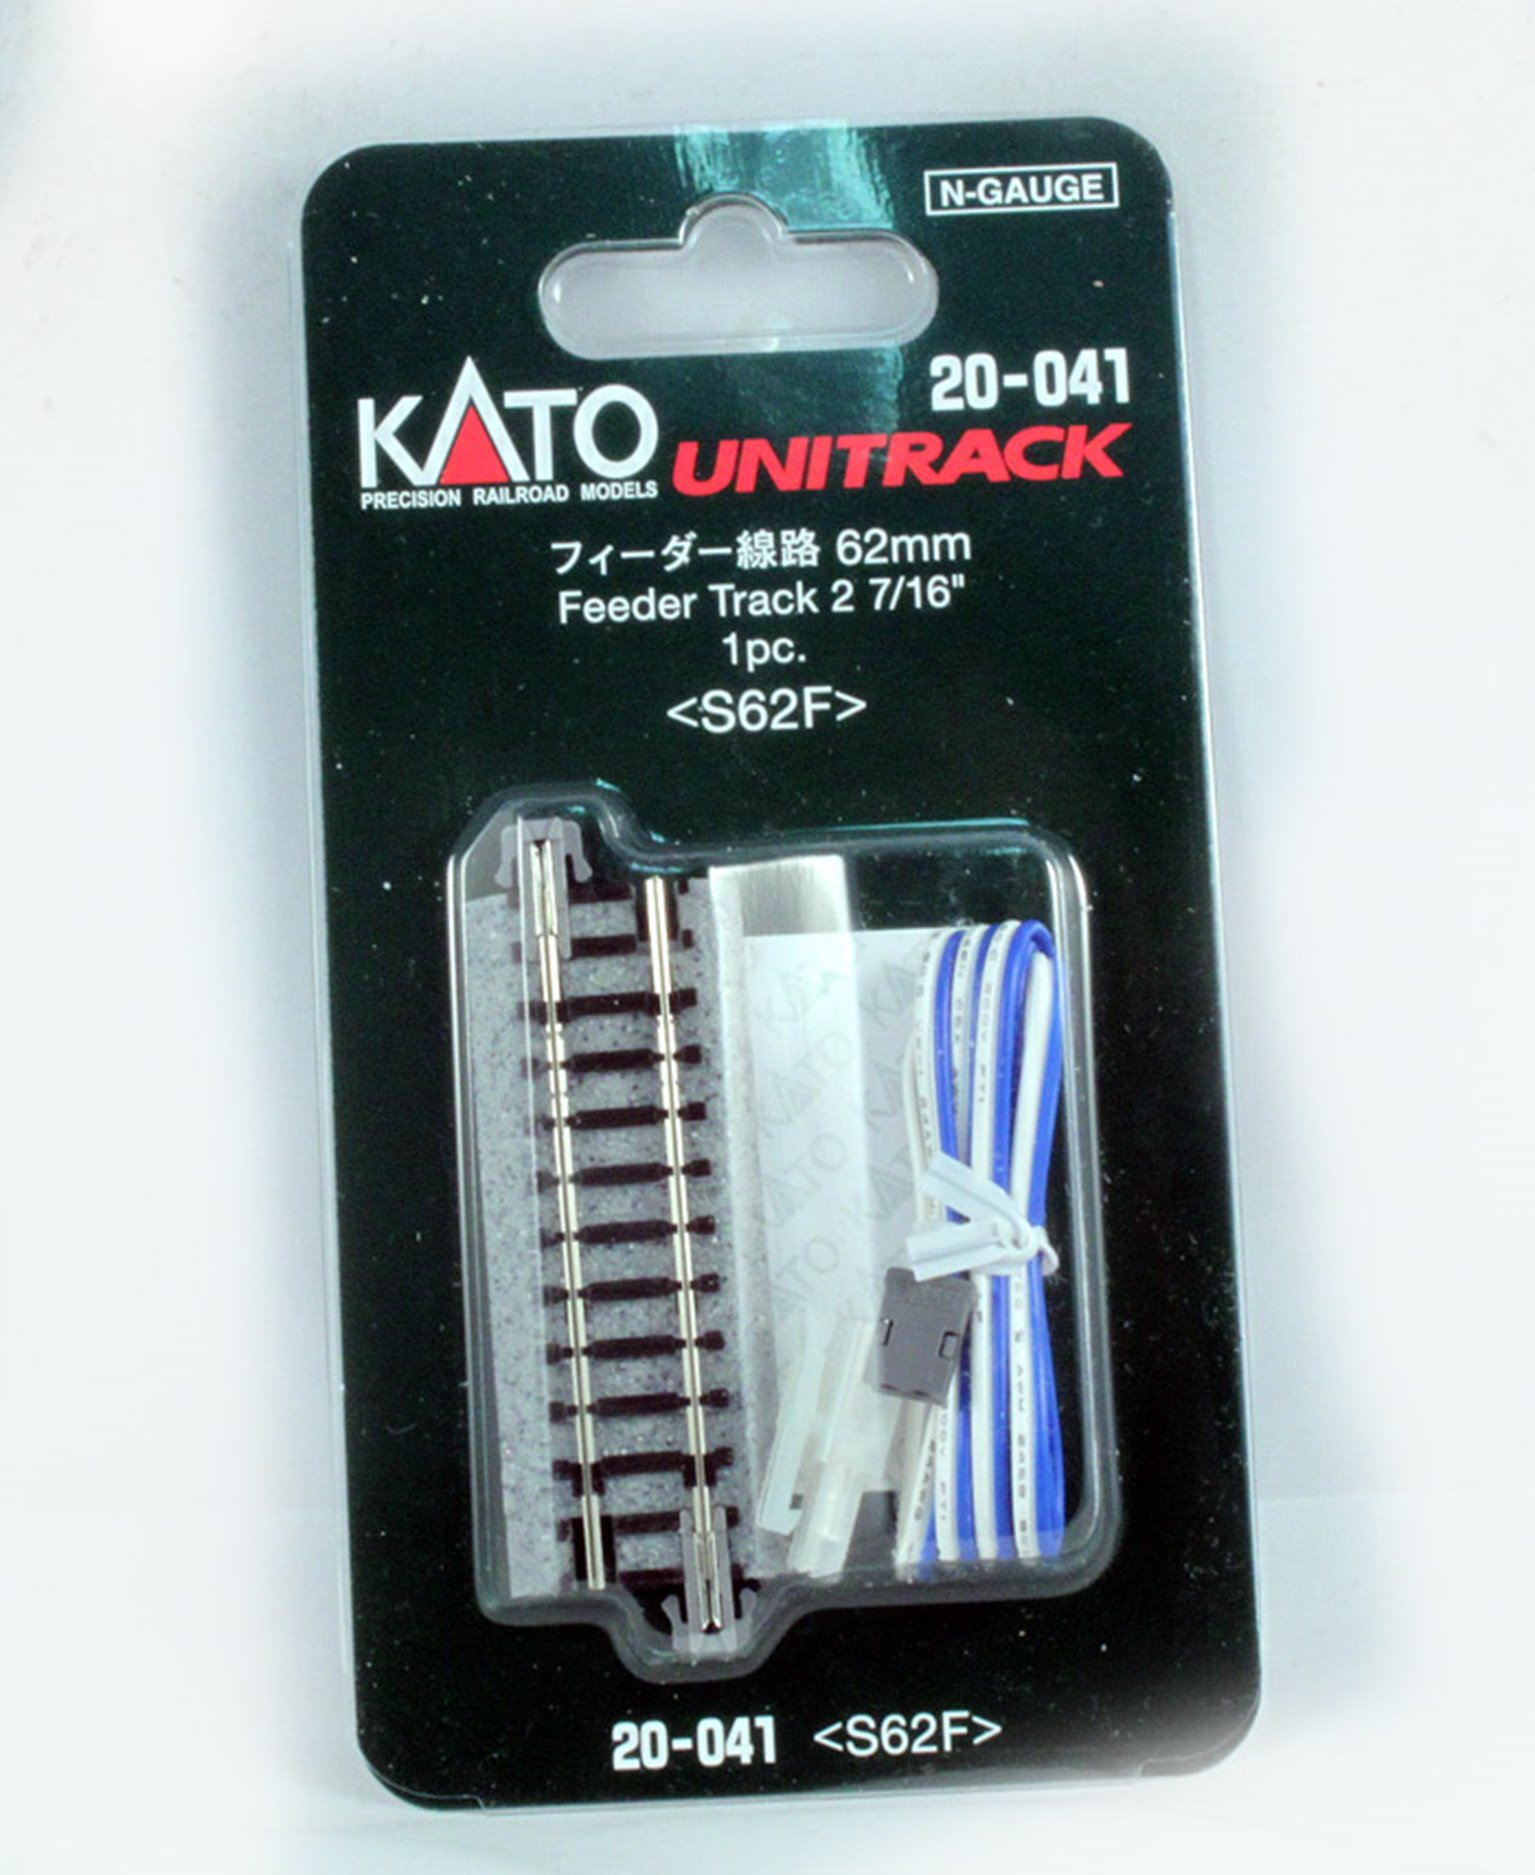 Kato 20-041 Ground Level 62mm Single Feeder Track